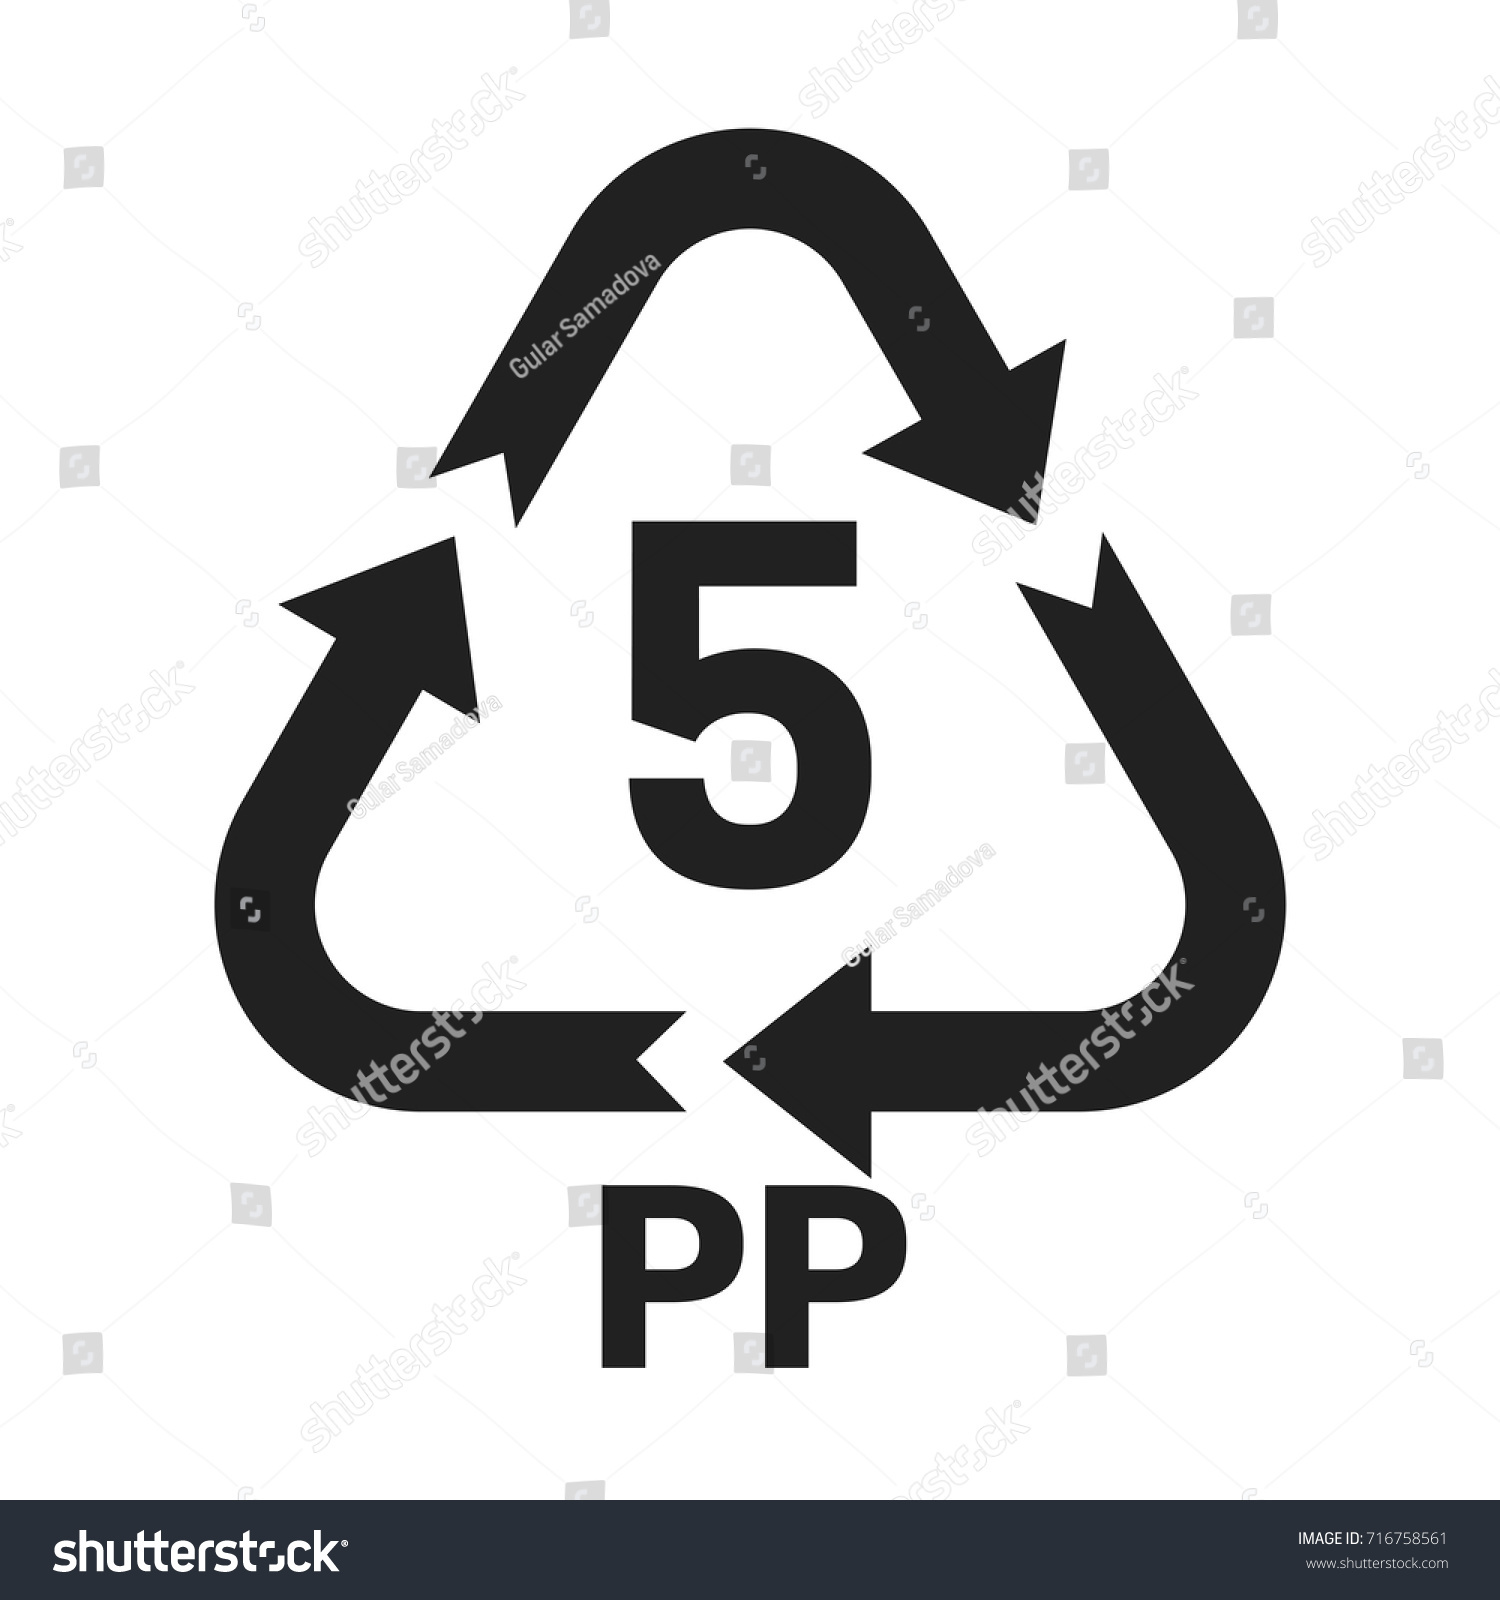 5 Pp Icon Pp 5 Icon Stock Vector Royalty Free 716758561 Shutterstock